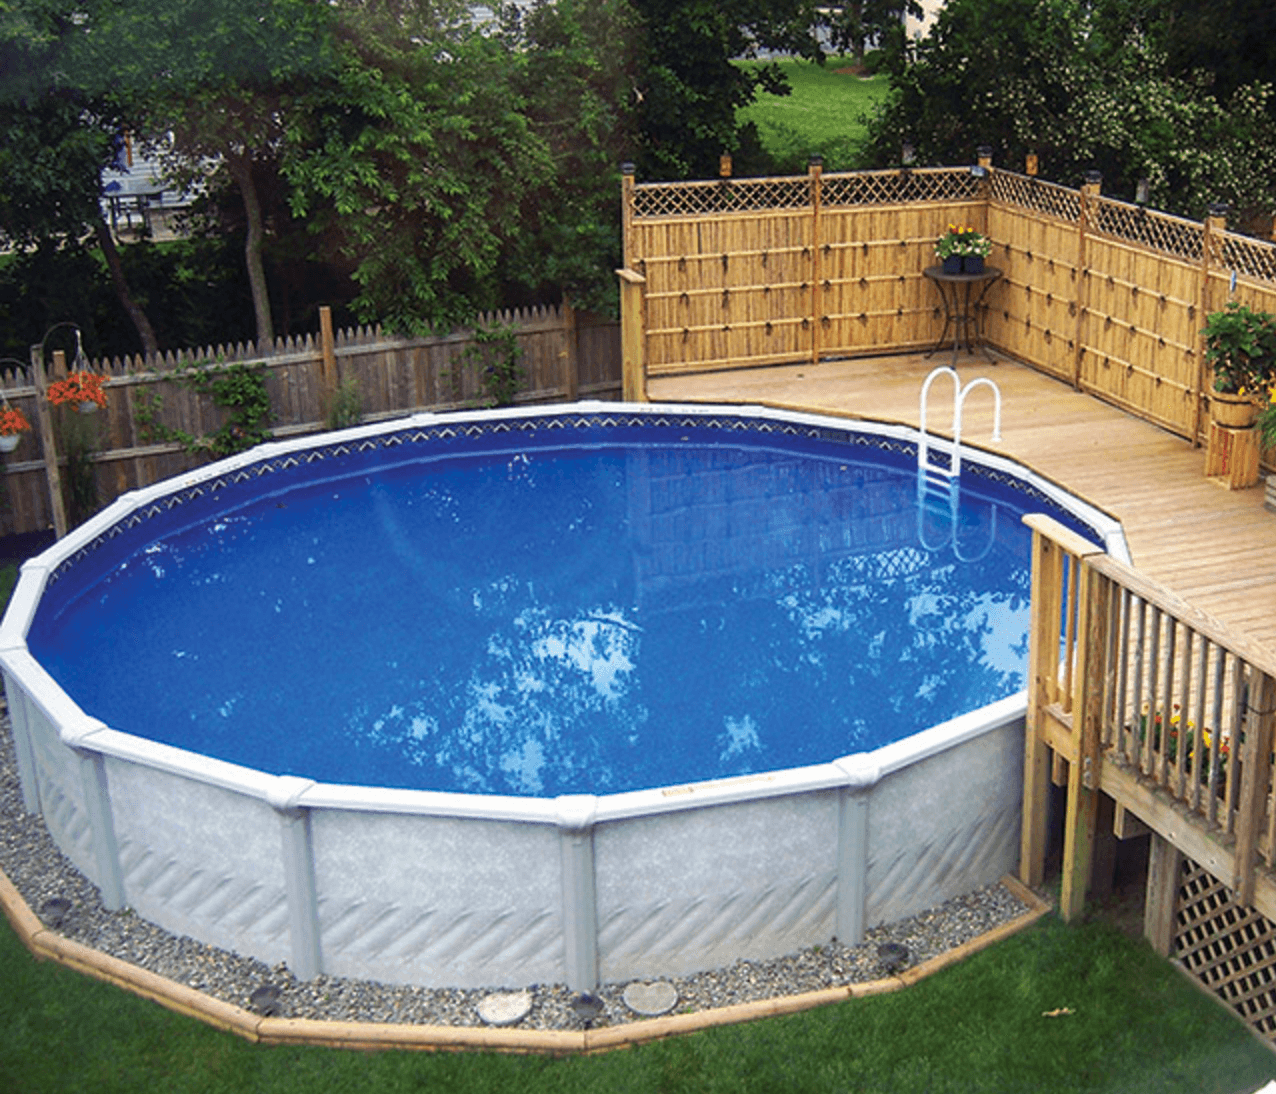 2018 best above ground pool ideas with building tips - Above ground pool deck ideas on a budget ...